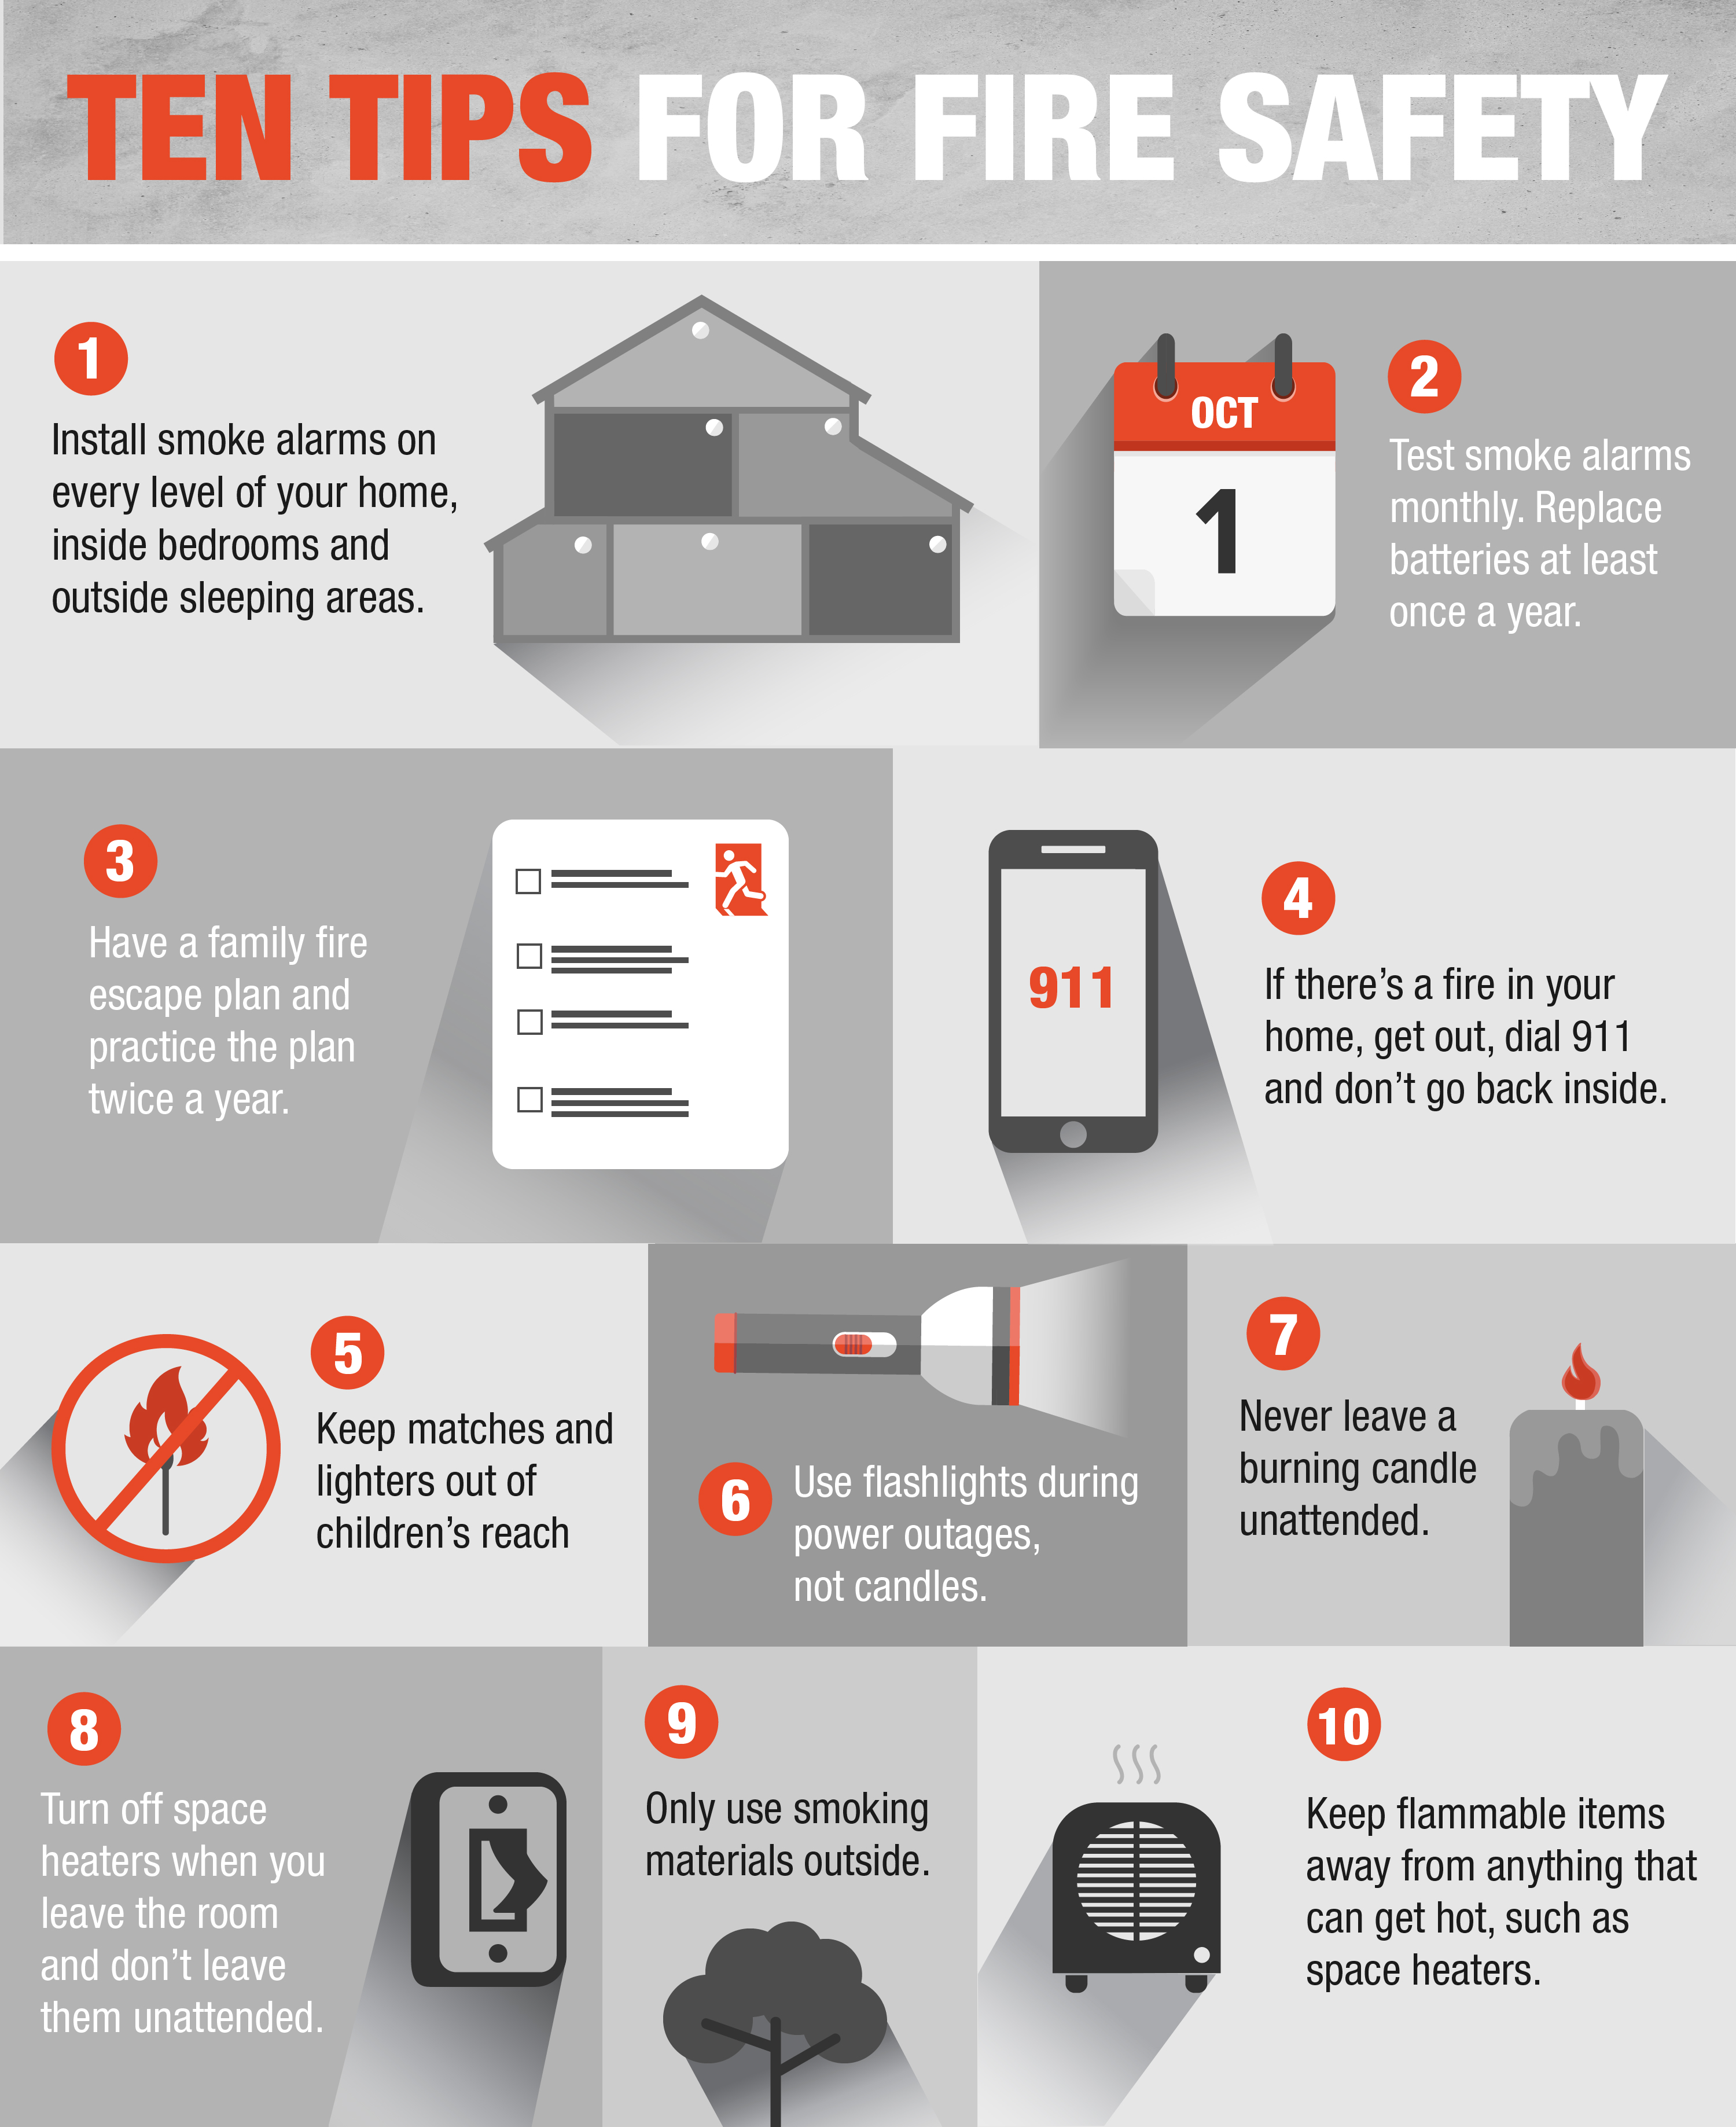 The home depot 10 tips for fire safety for Fire prevention tips for home